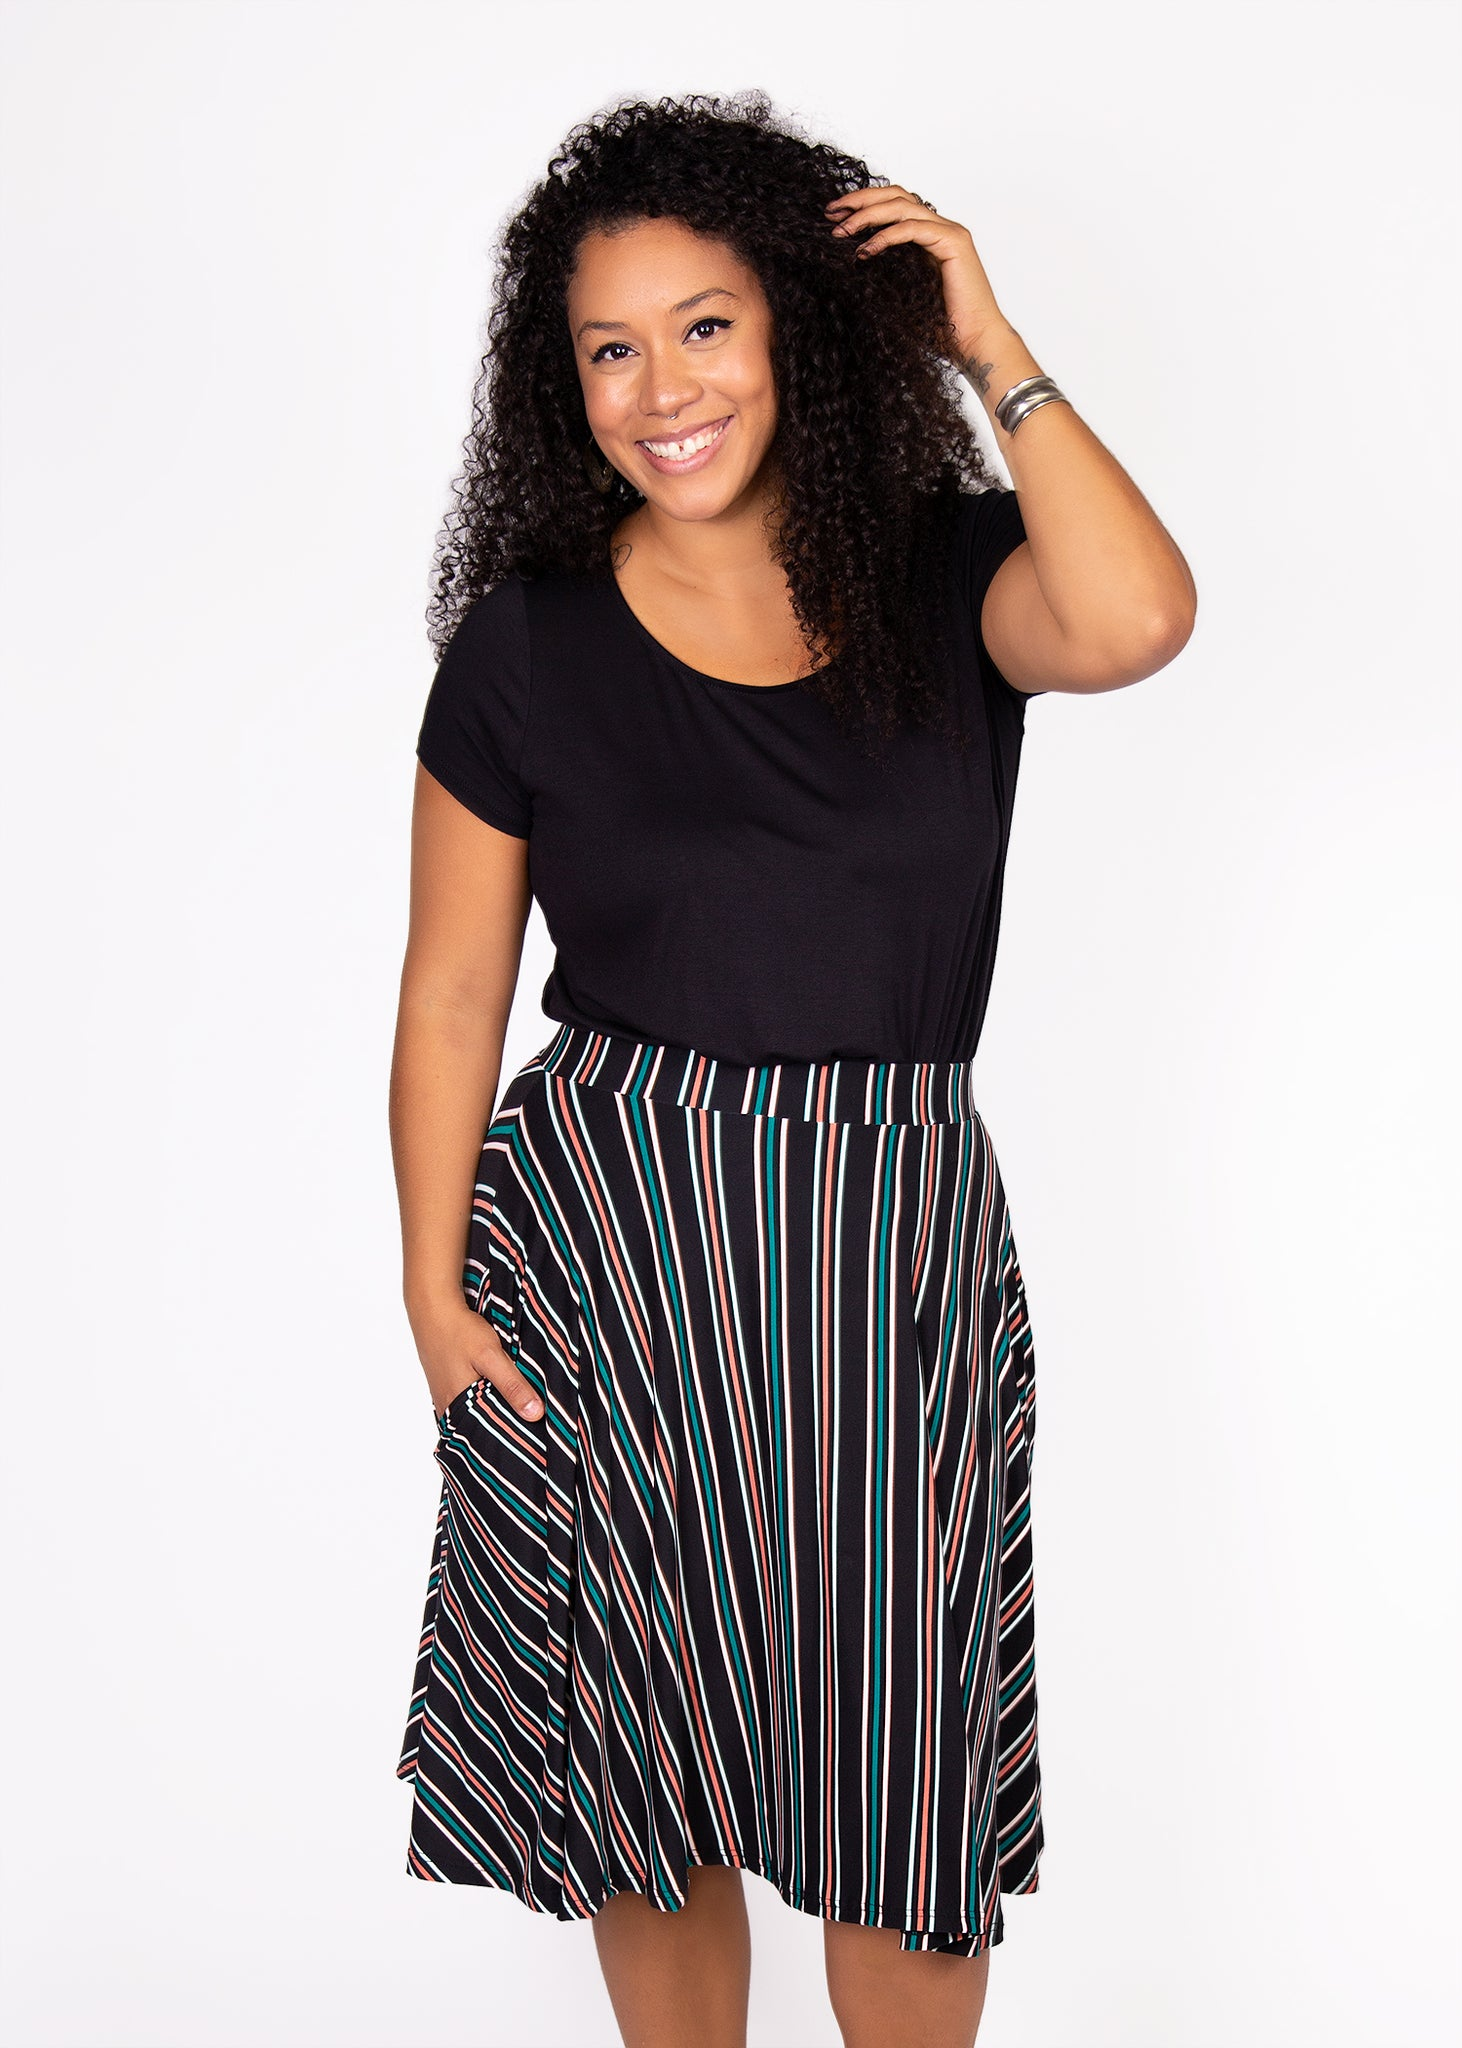 comfortable-chaos-boutique - Bloom Skirt - Black/Pink/Teal Stripe (3X) - Skirt